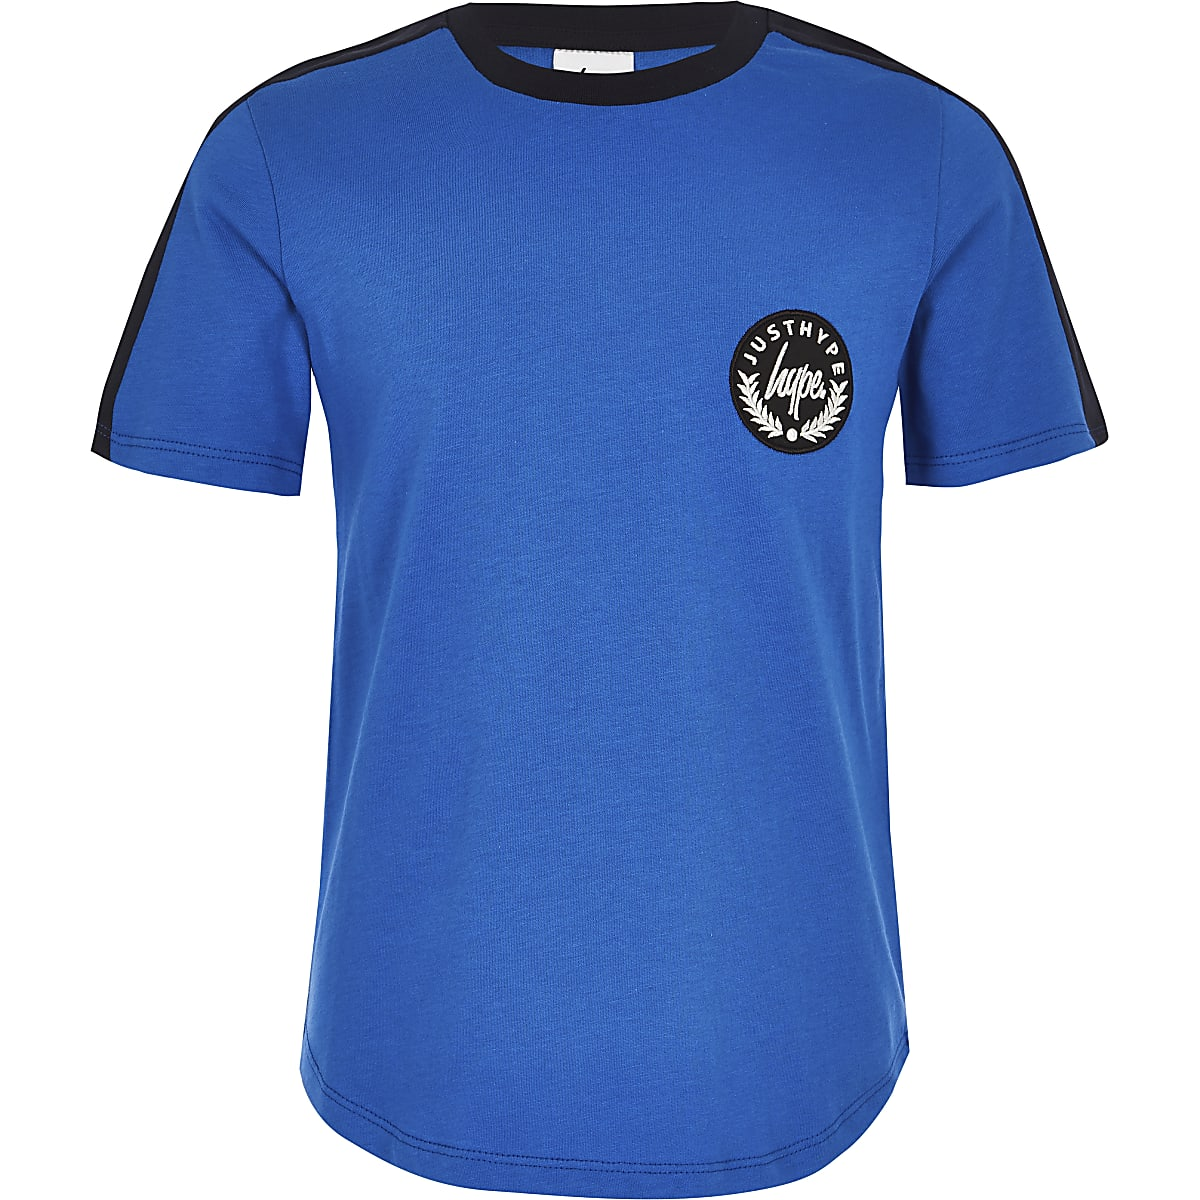 Boys Hype blue tape T-shirt